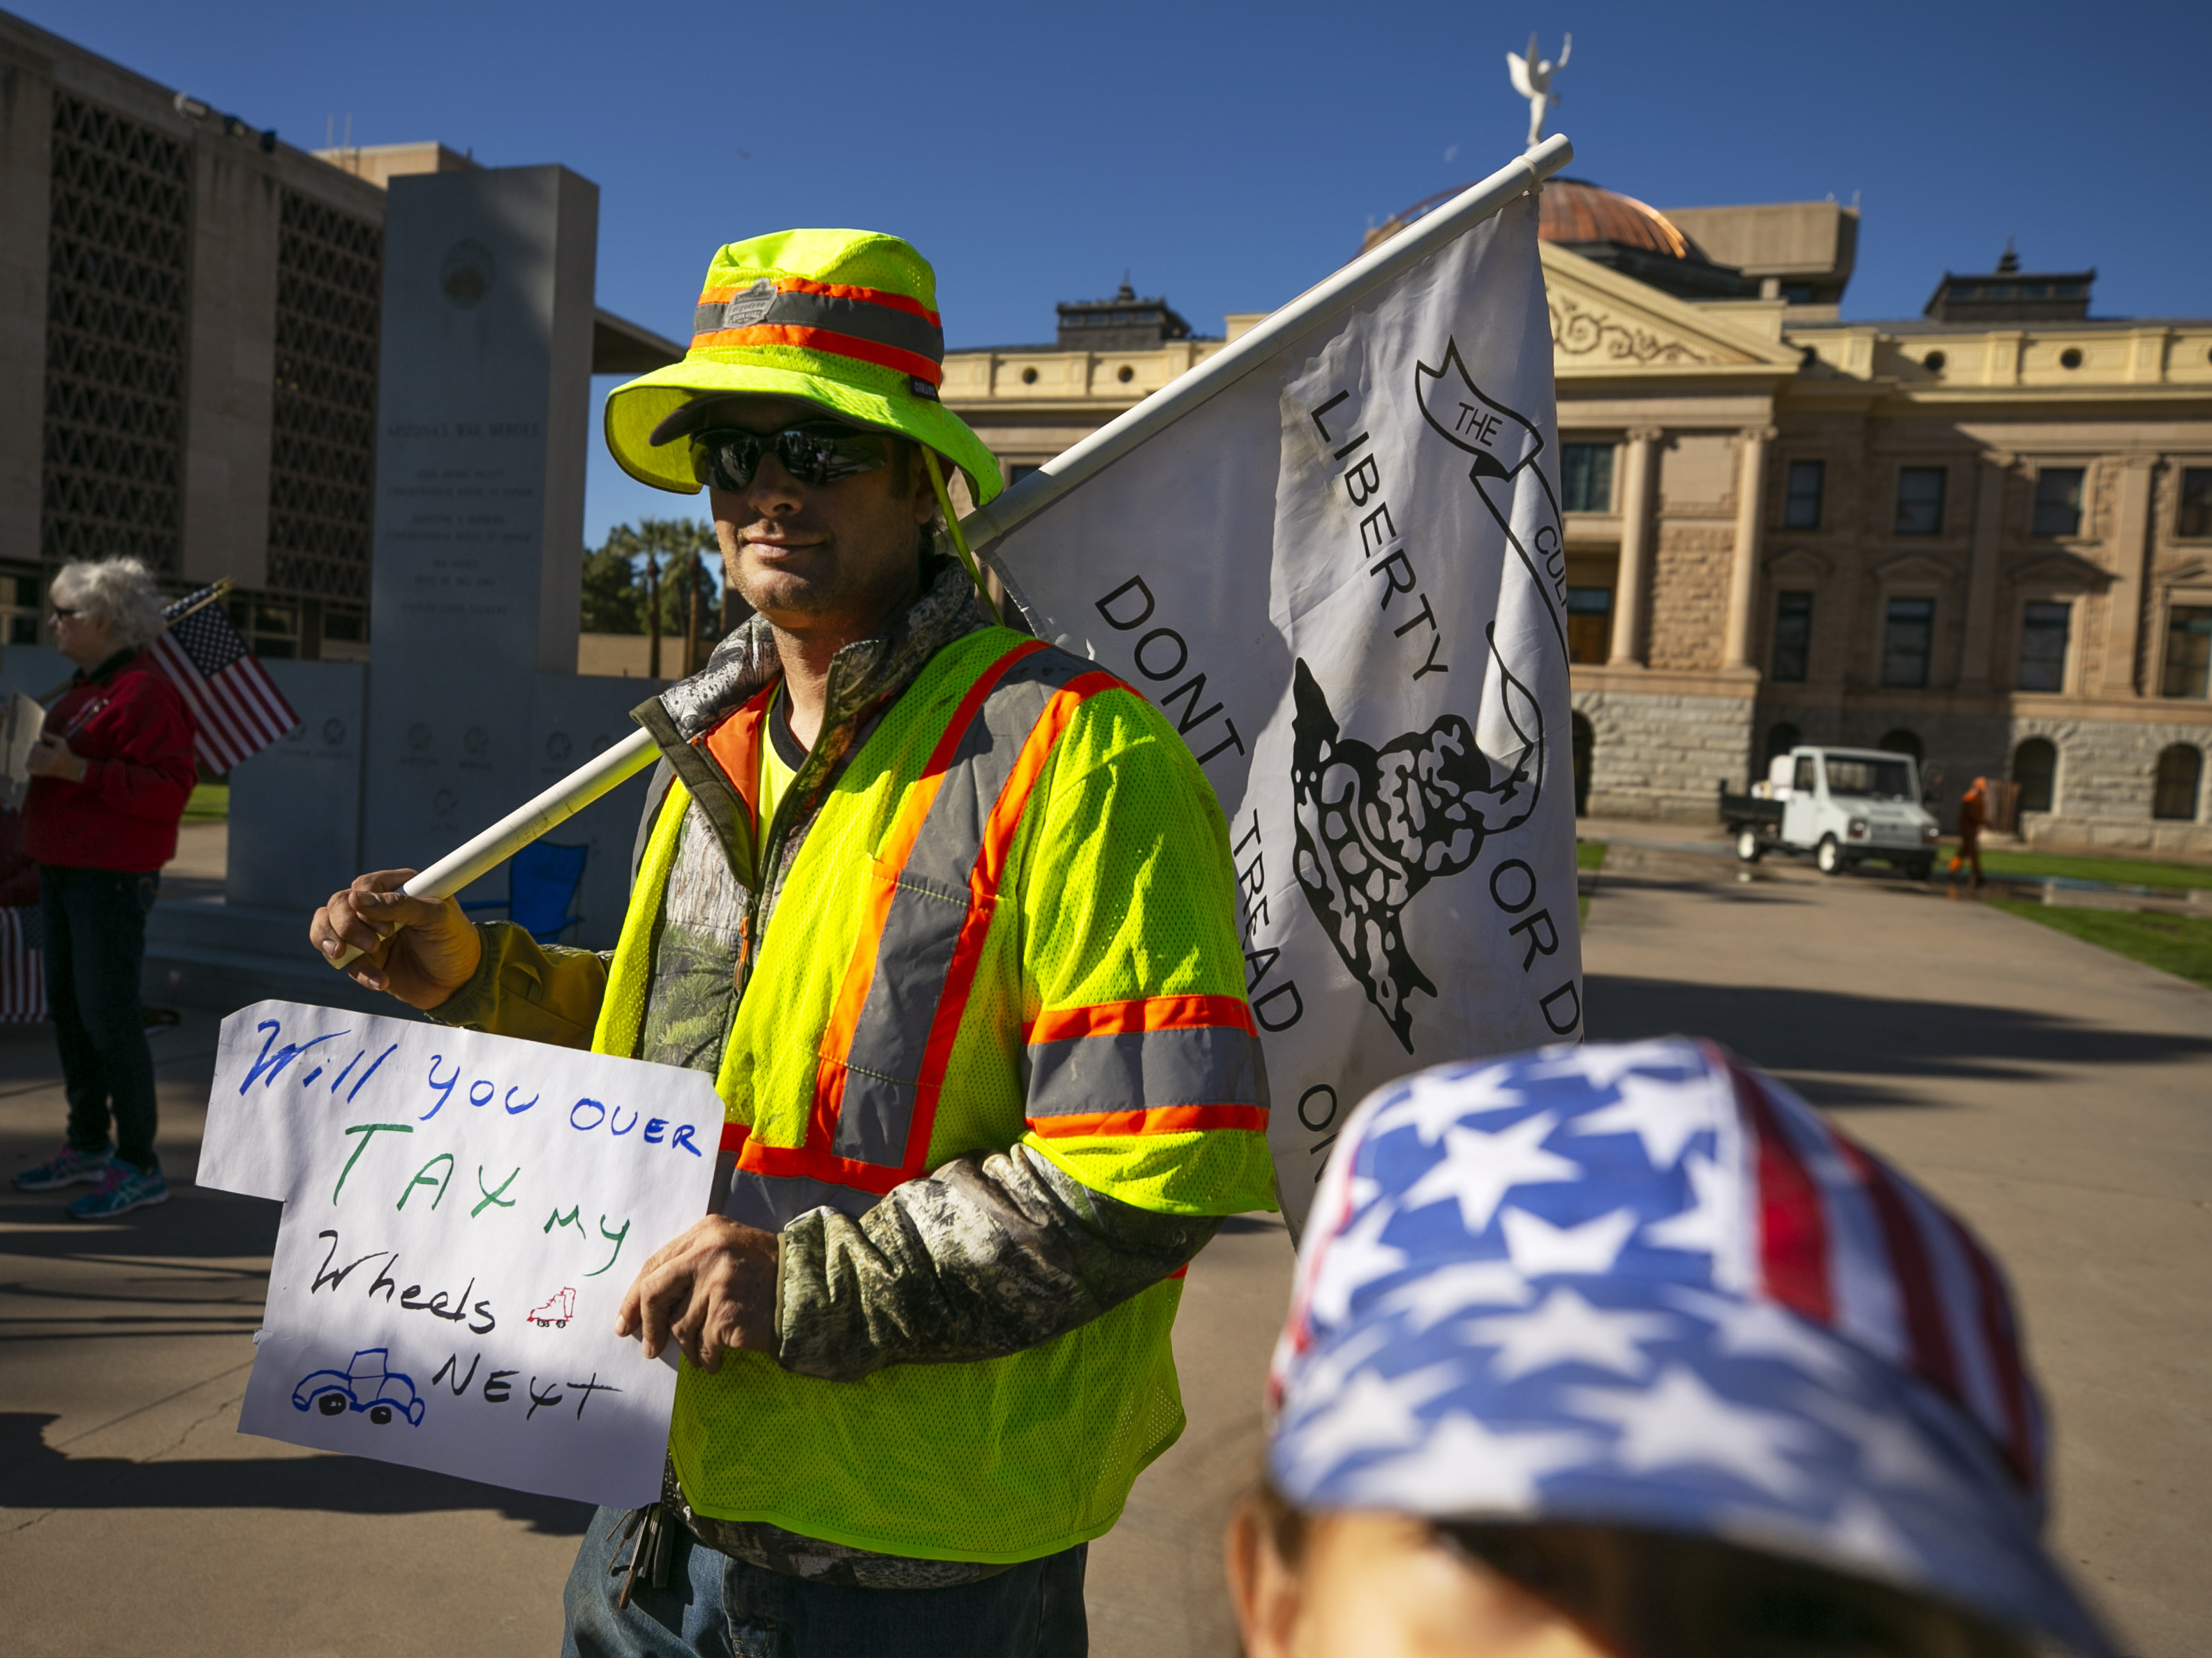 Bryon McComb and his daughter Kathryn McComb, 9, of Phoenix, protest the new $32 vehicle-registration fee at the Arizona state Capitol in Phoenix on Dec. 28, 2018. Protesters argue it's an illegal tax that was not approved by two-thirds of both chambers of the state Legislature.